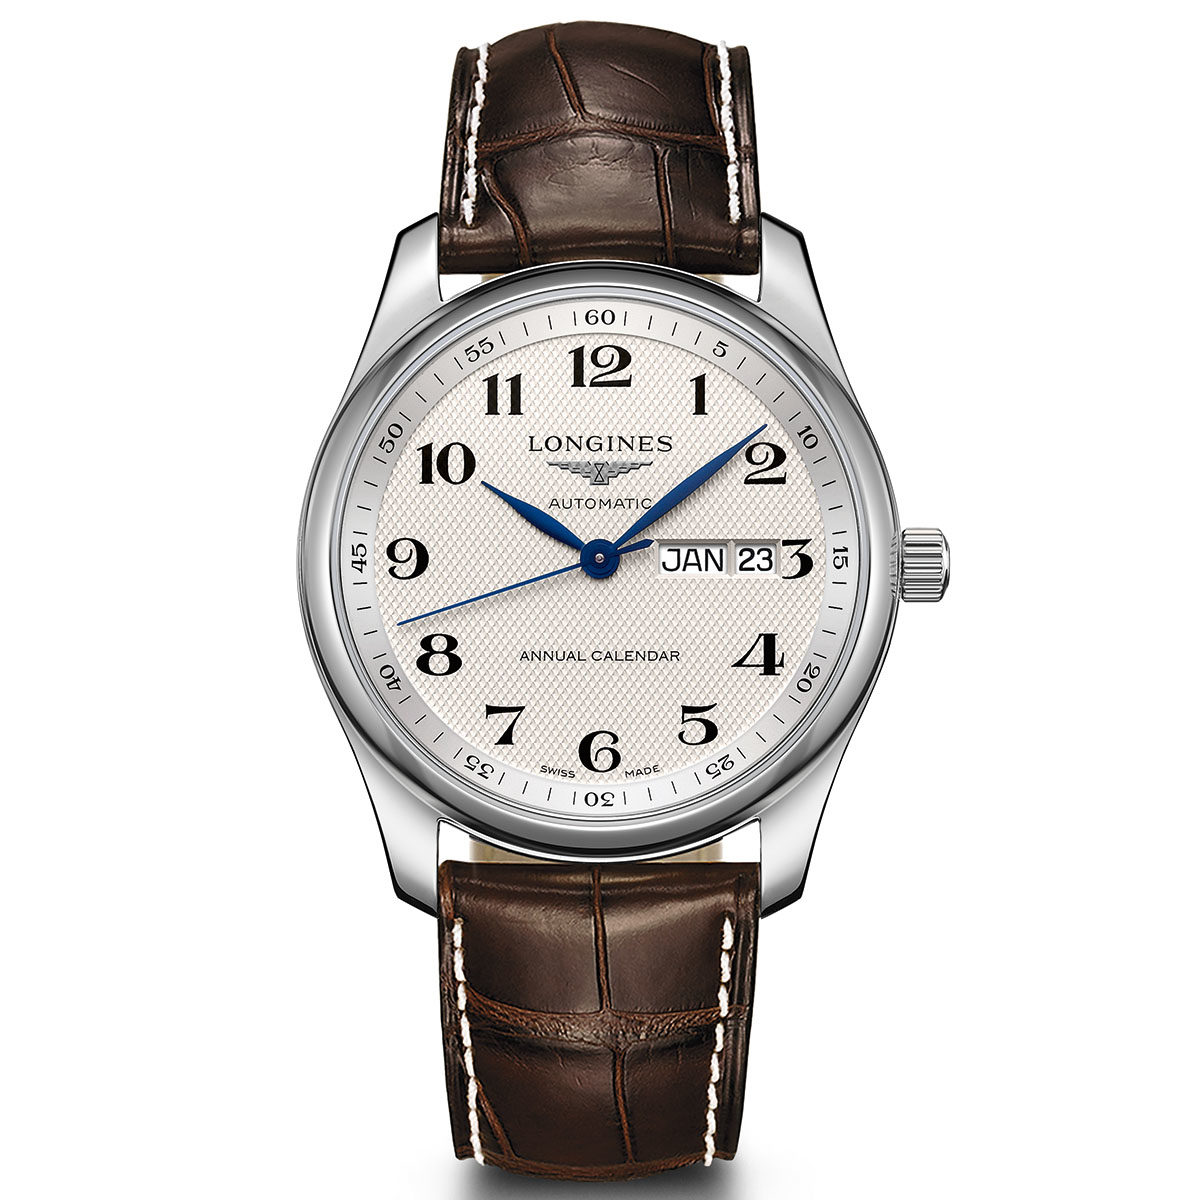 The Longines Master Collection Annual Calendar - 读懂你的表盘:日历表款解析